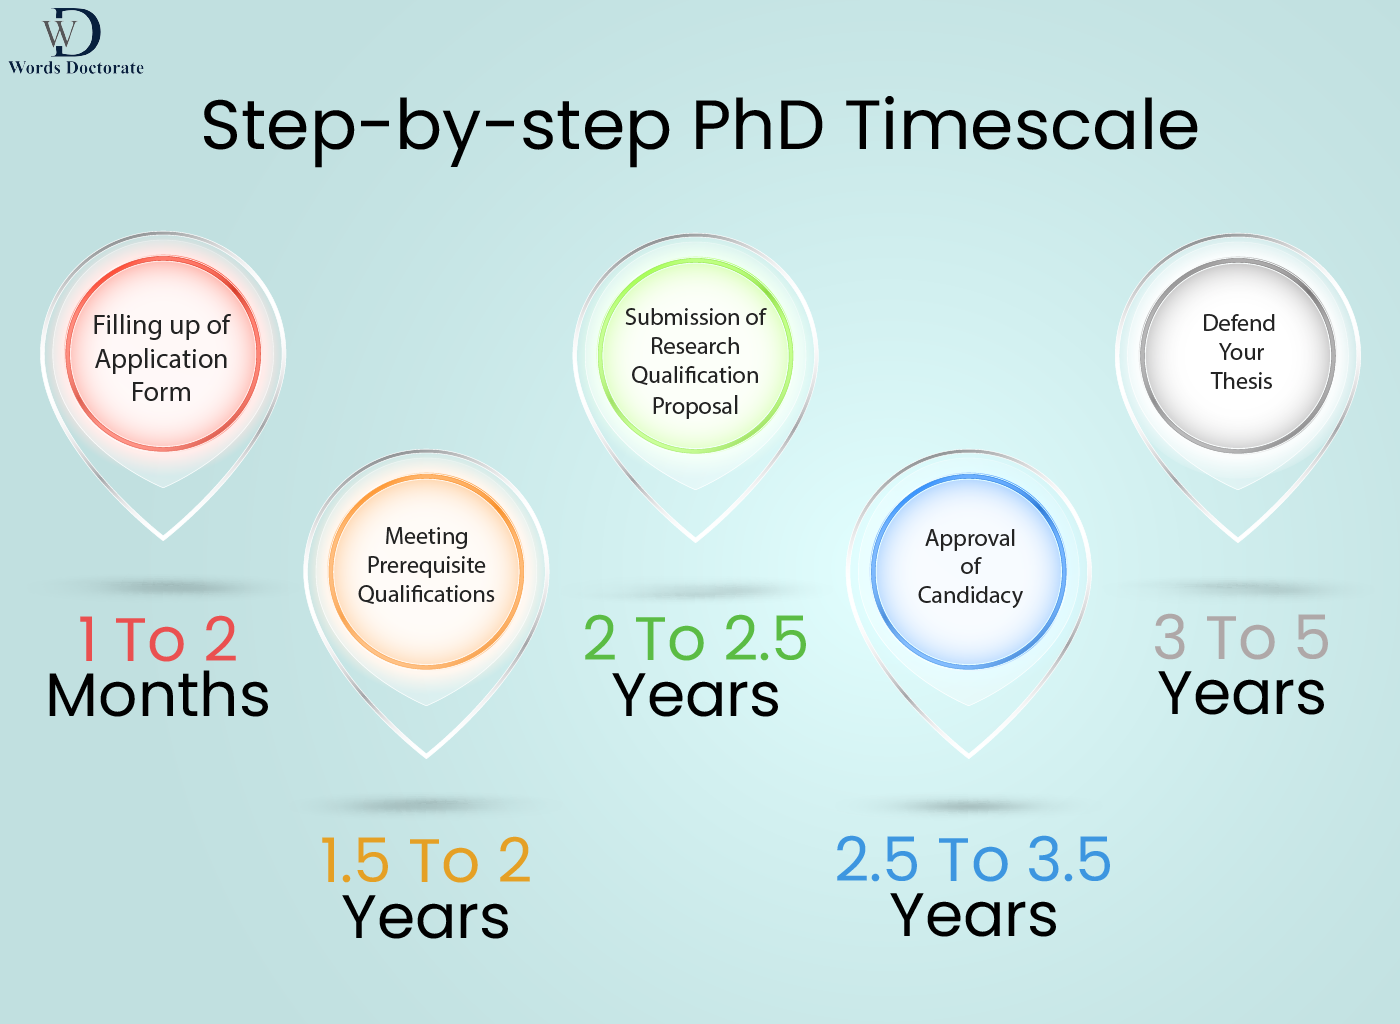 Step-by-step PhD Timescale